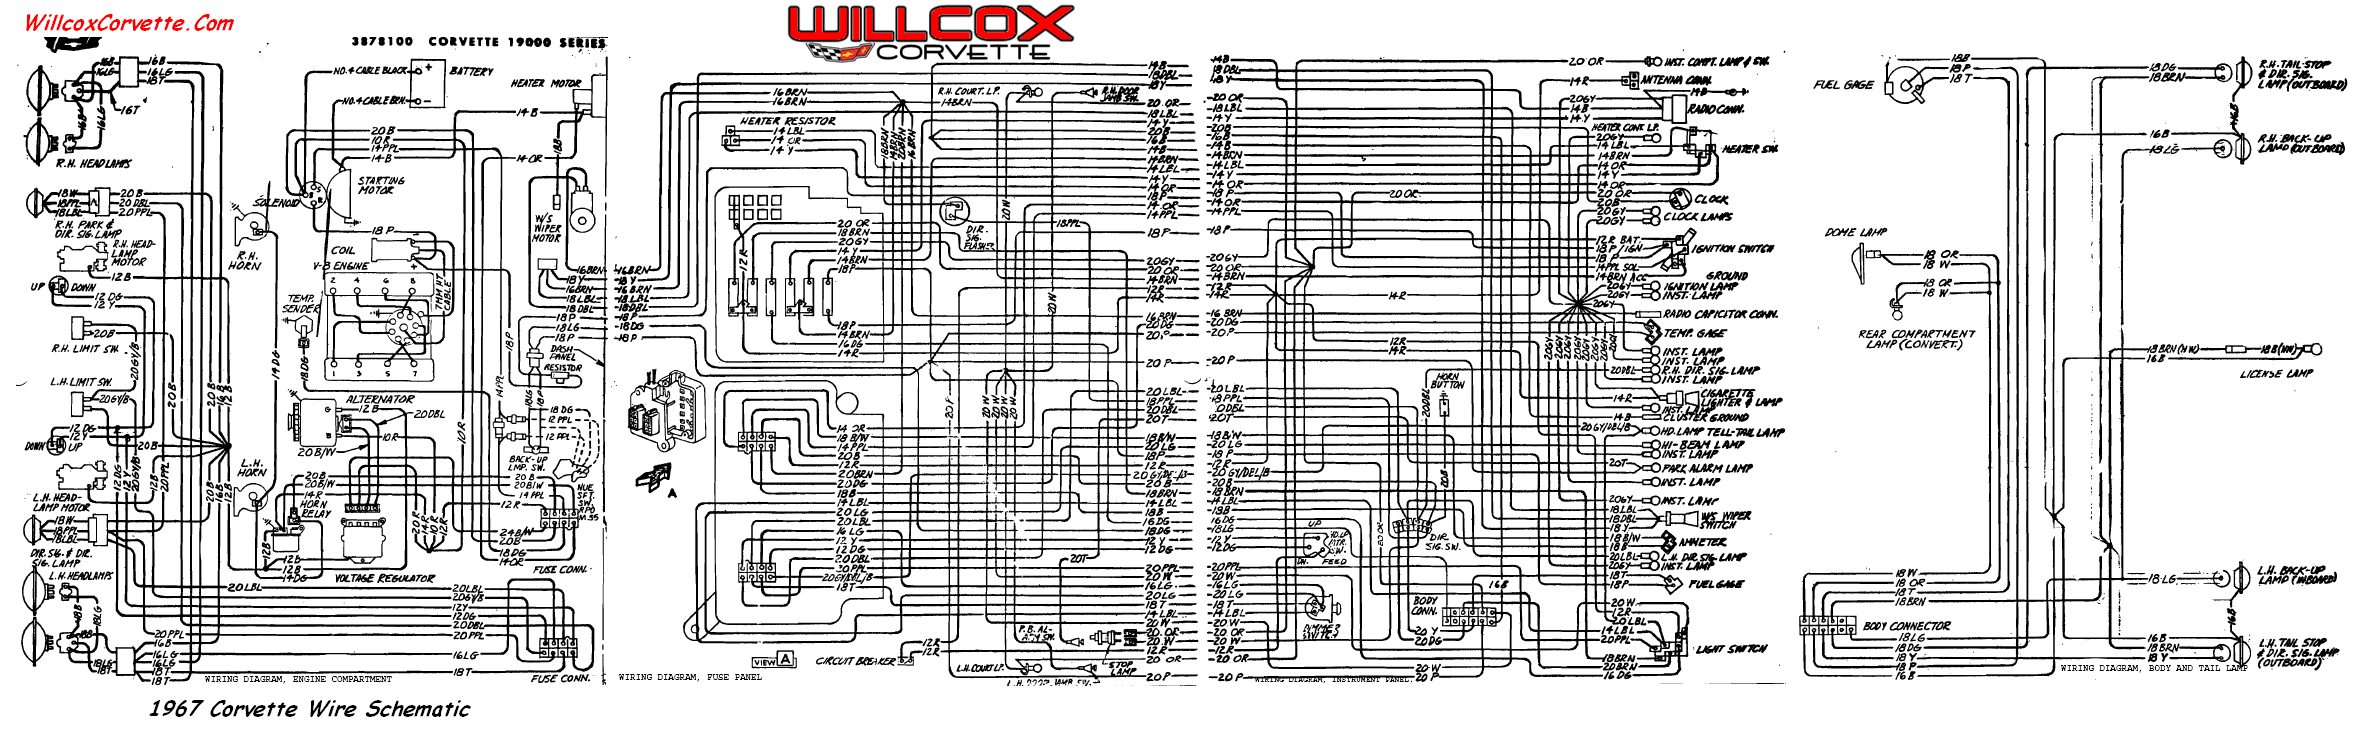 67 wire schematic for tracing wires 1967 corvette wiring diagram (tracer schematic) willcox corvette 1985 corvette wiring diagram at gsmx.co